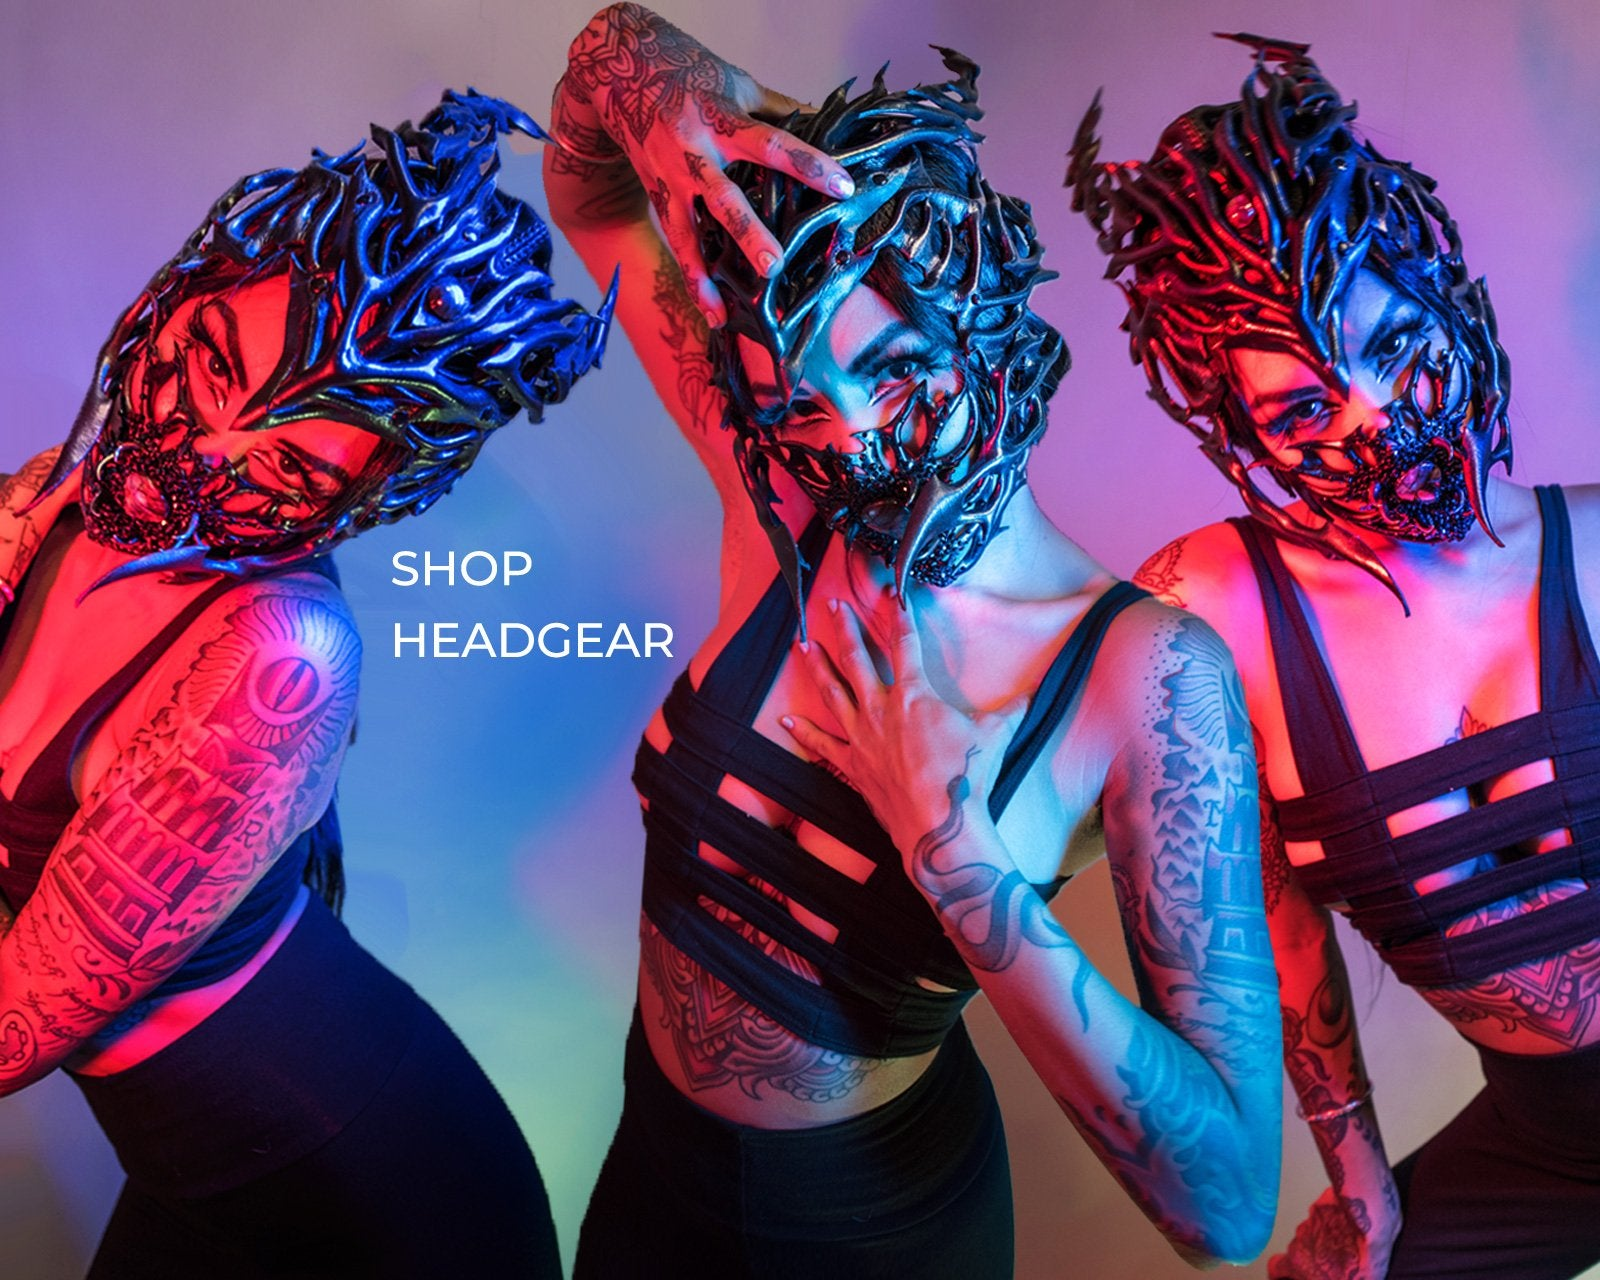 Shop Headgear Art Show - our 8th annual event, live streamed from San Francisco